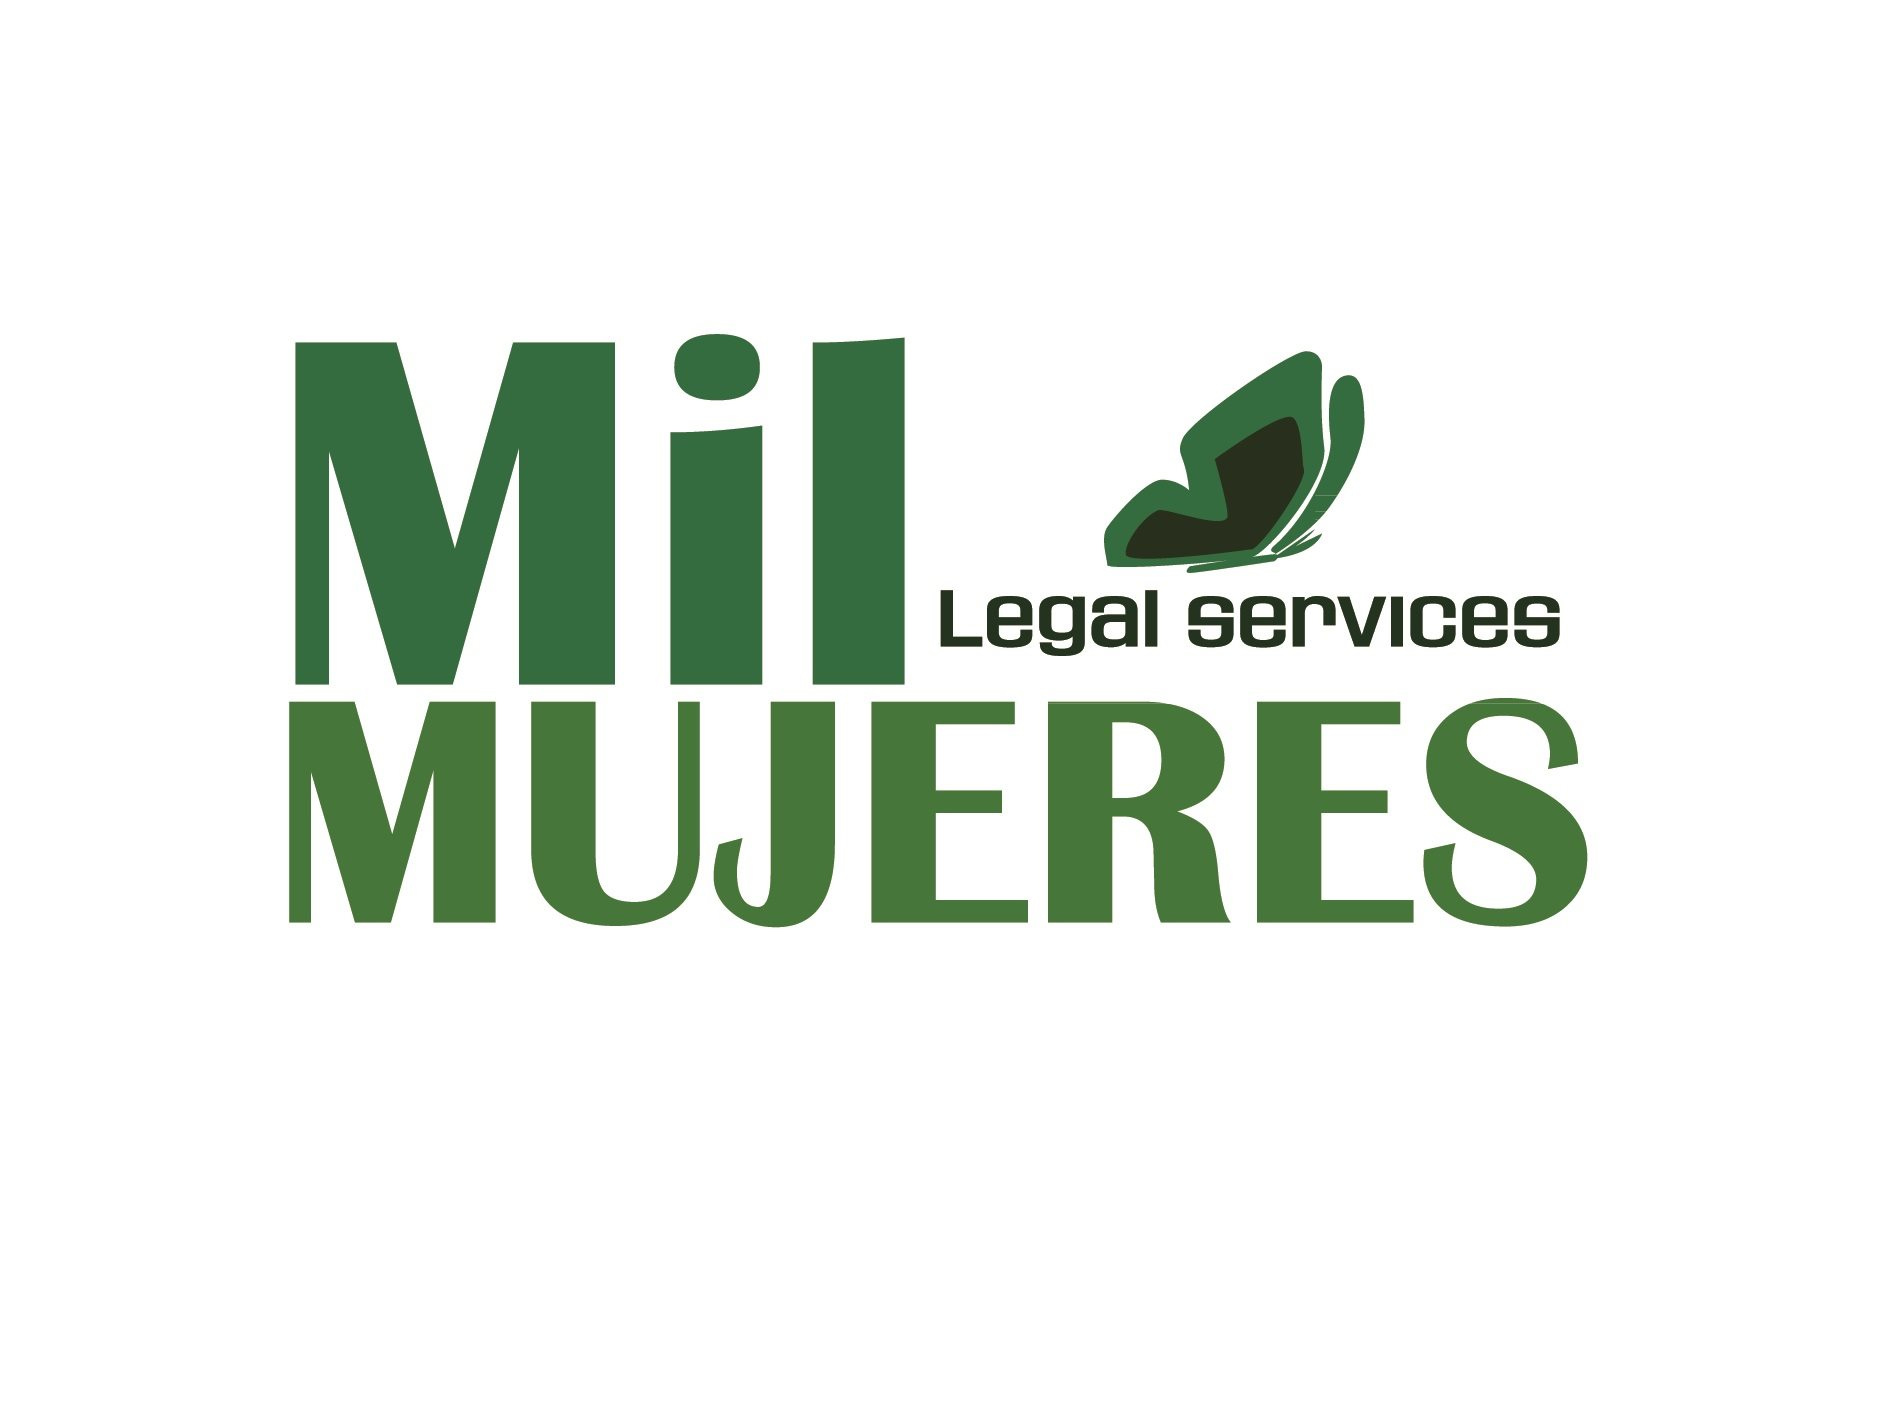 Mil Mujeres Legal Services